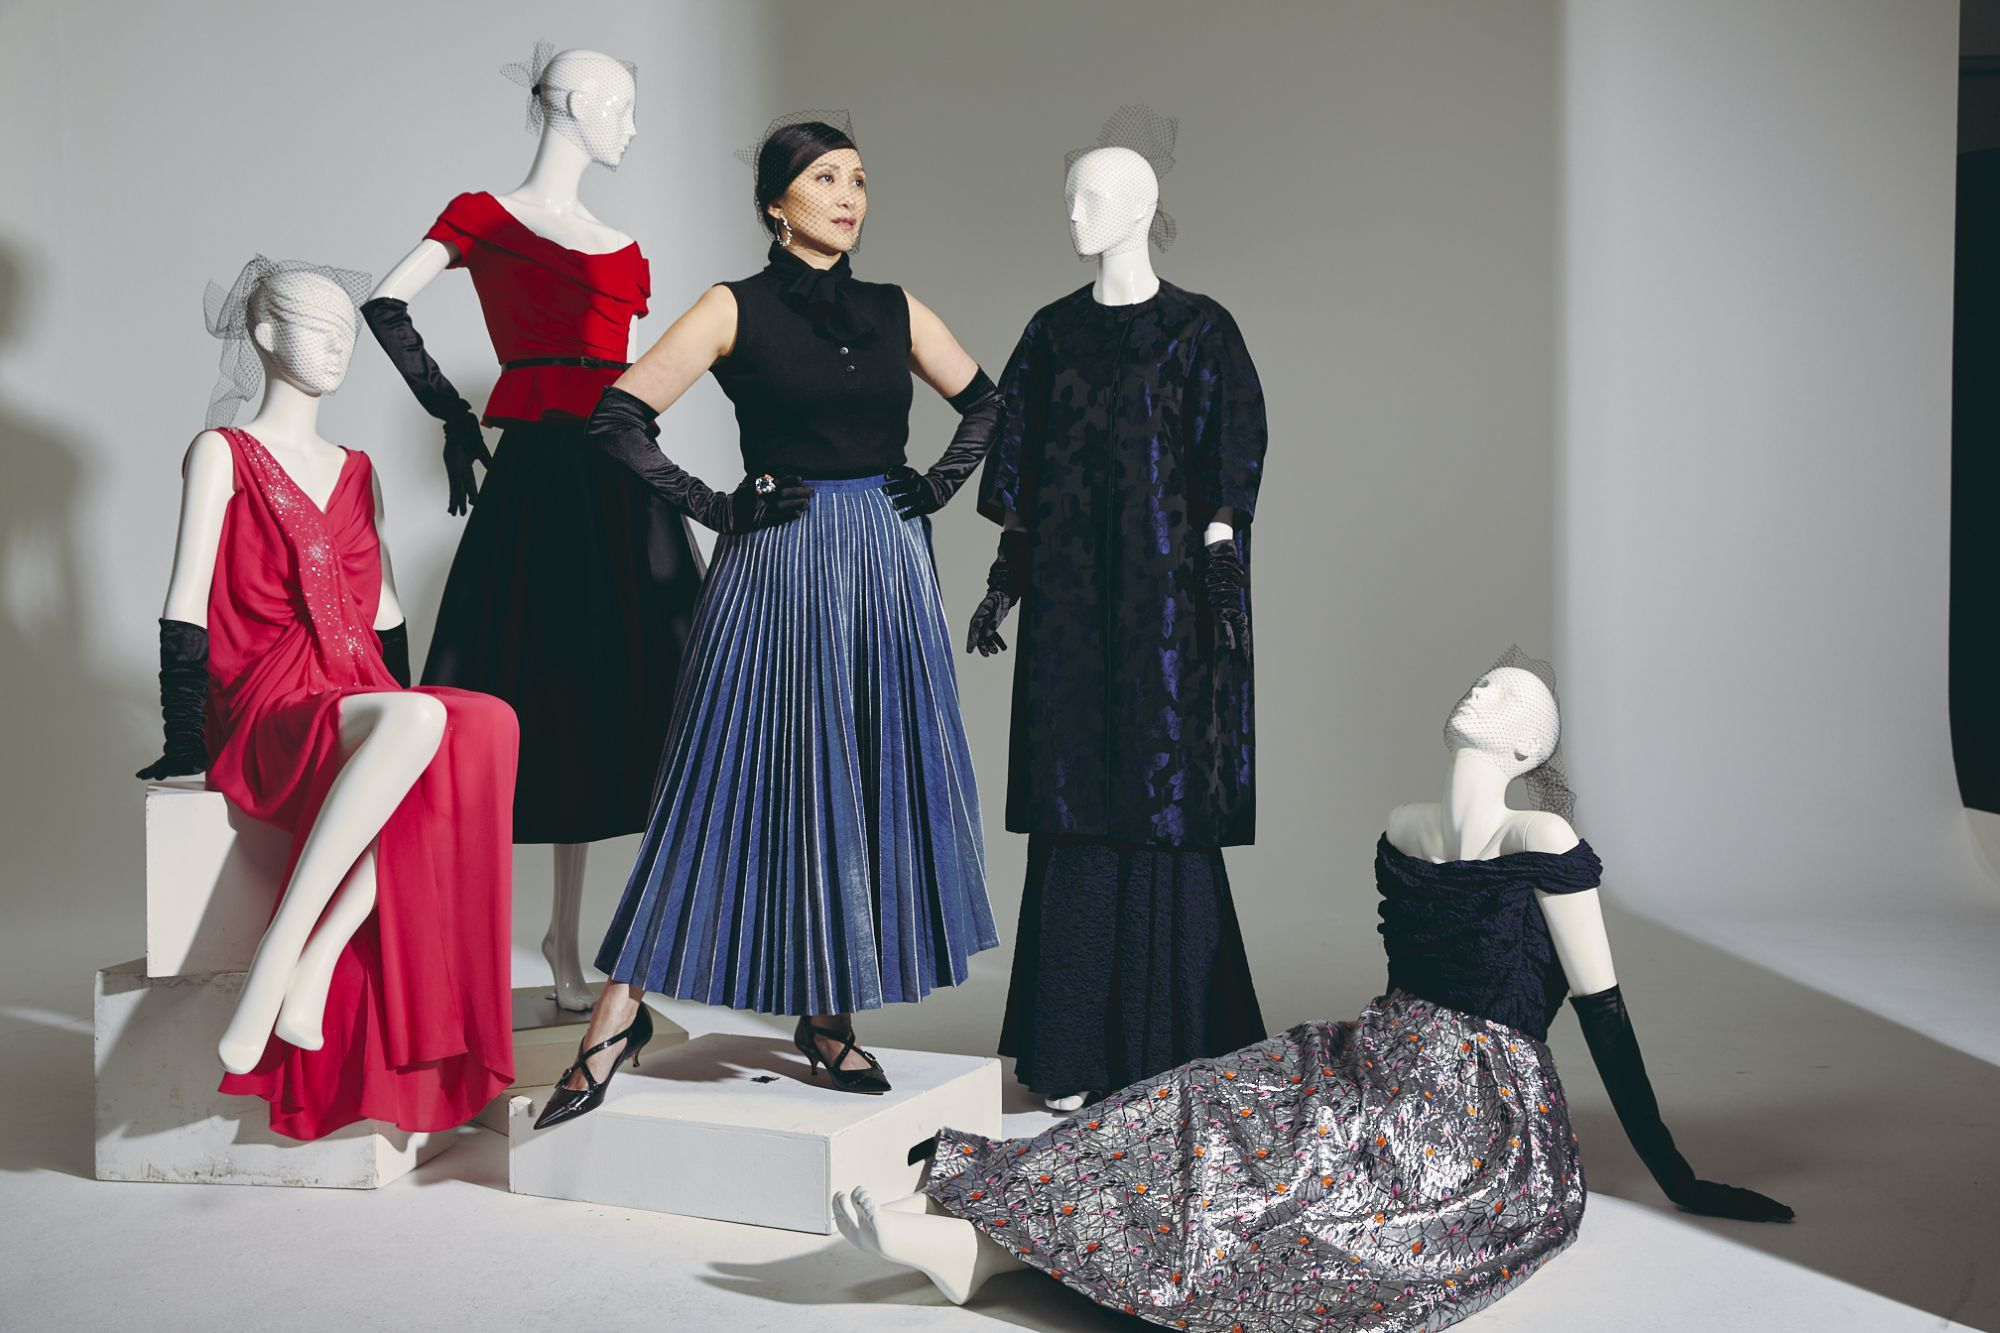 Fashion Collectors: Caroline Low-Heah's Love For Old Glamour Led Her To Discover Christian Dior